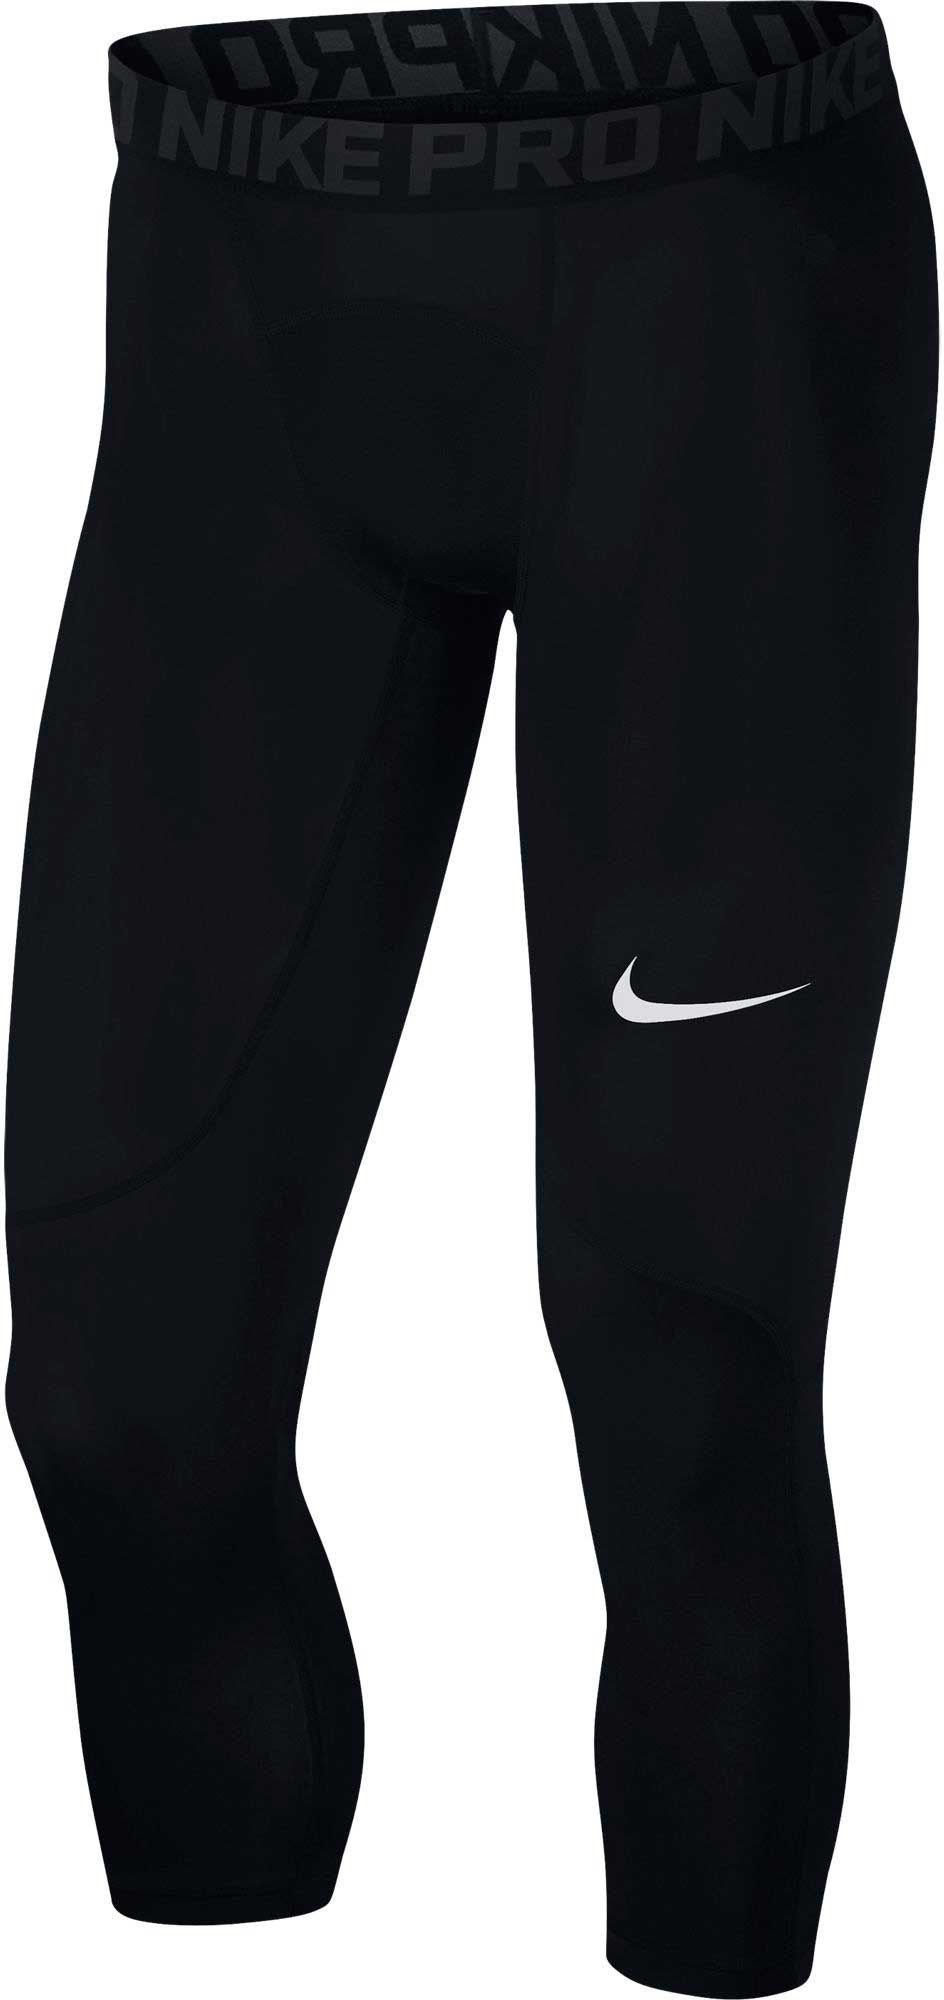 Nike Men's Pro Tights Black/Anthracite/White Size Medium by Nike (Image #1)